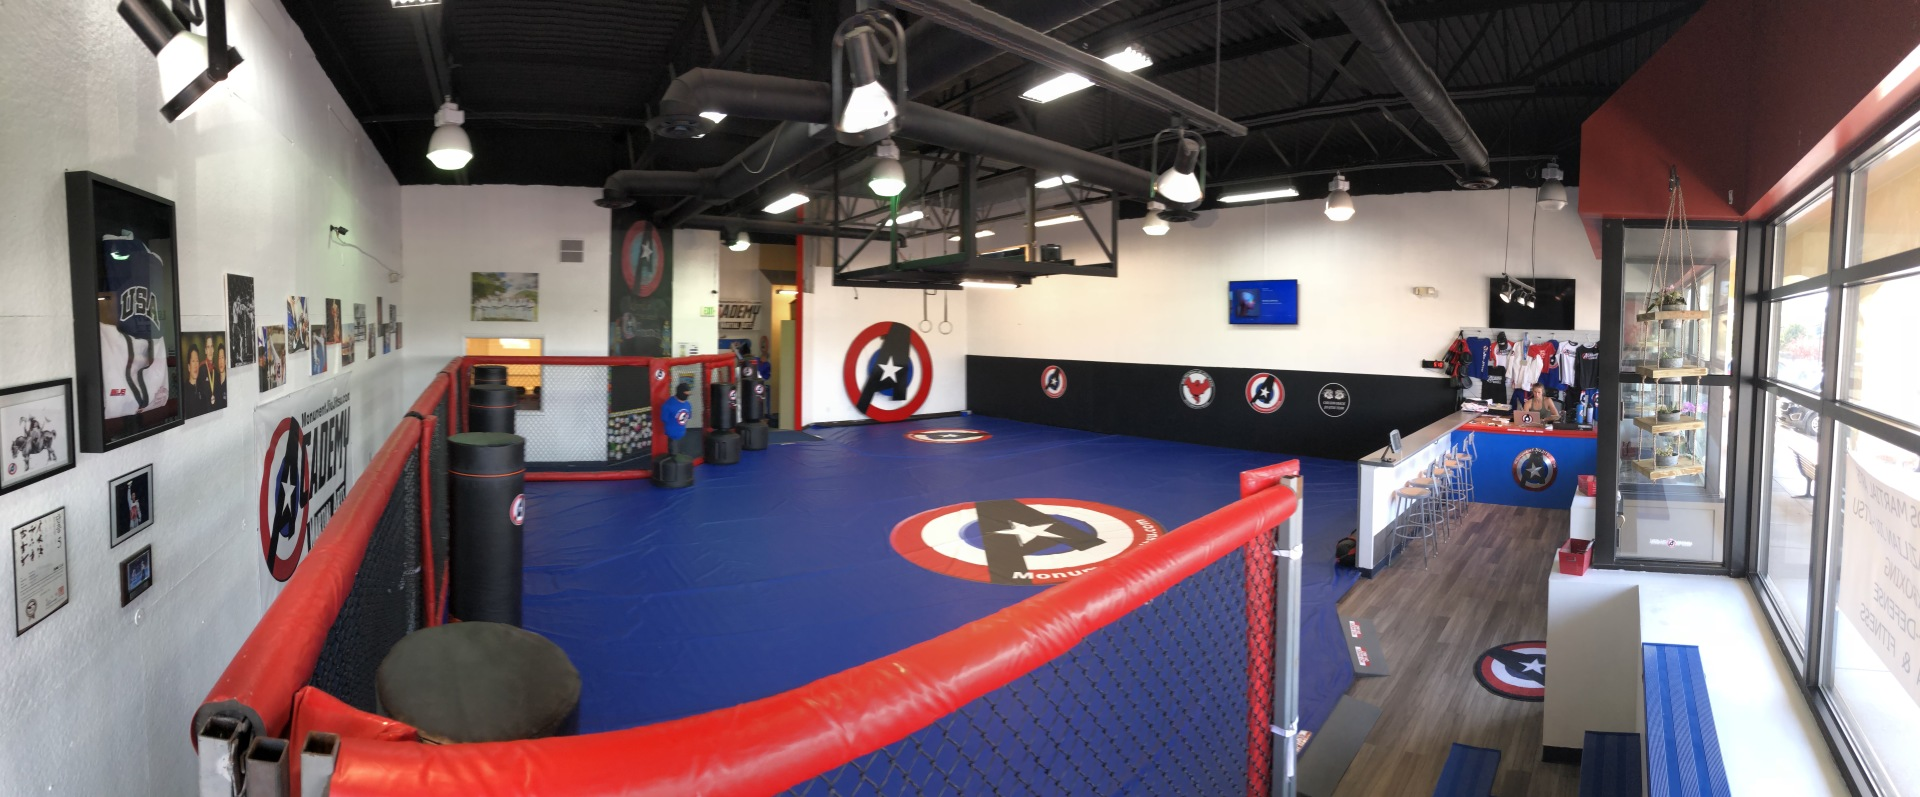 Welcome to The Academy of Martial Arts